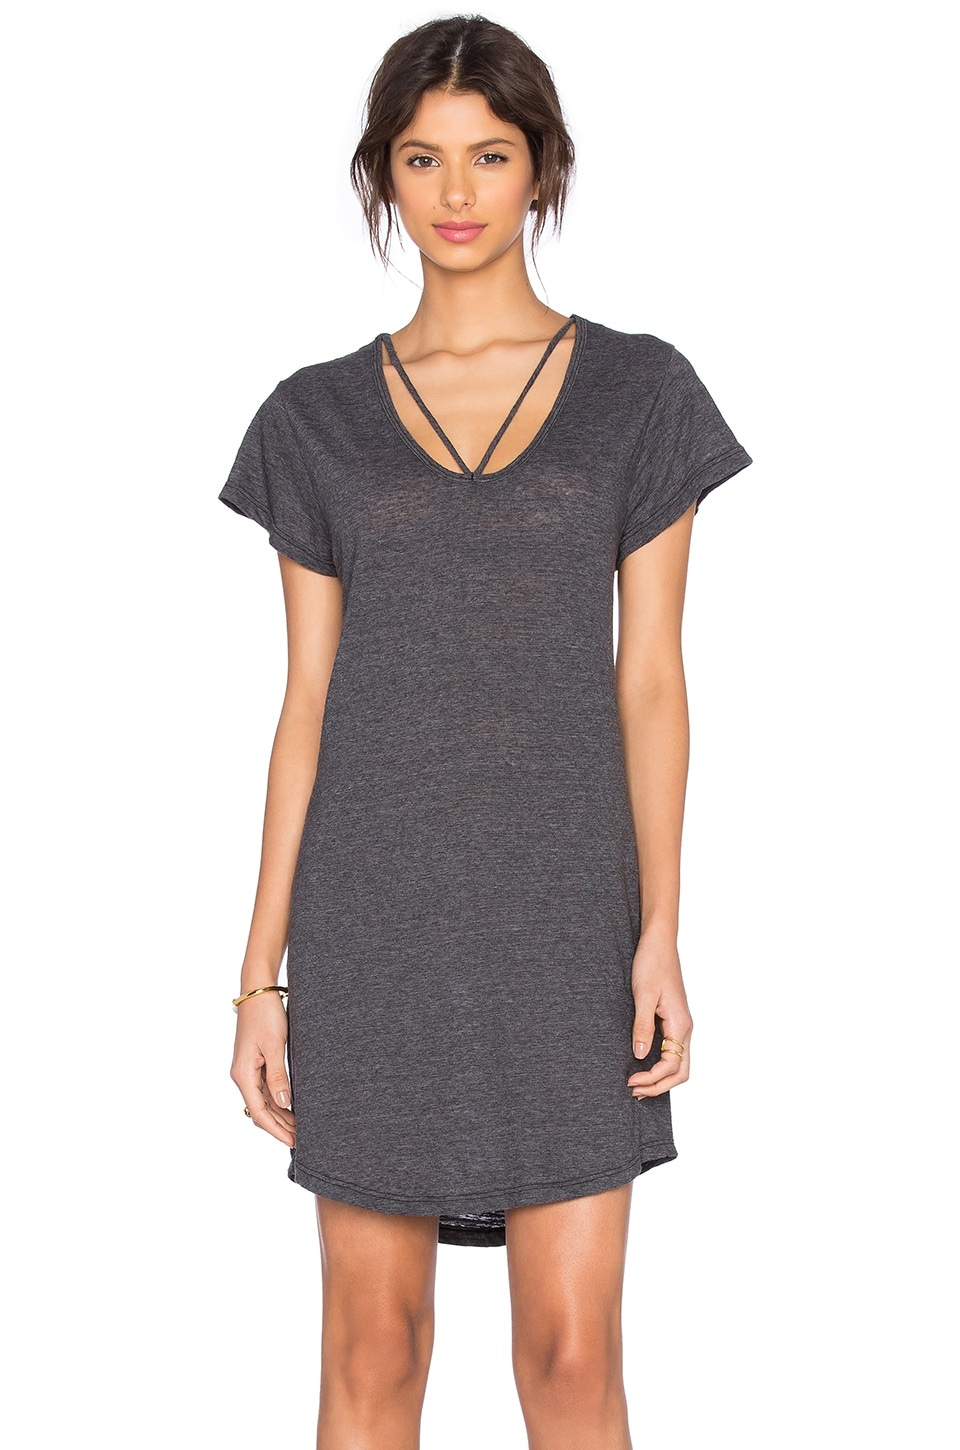 LNA Strappy Tee Dress in Granite